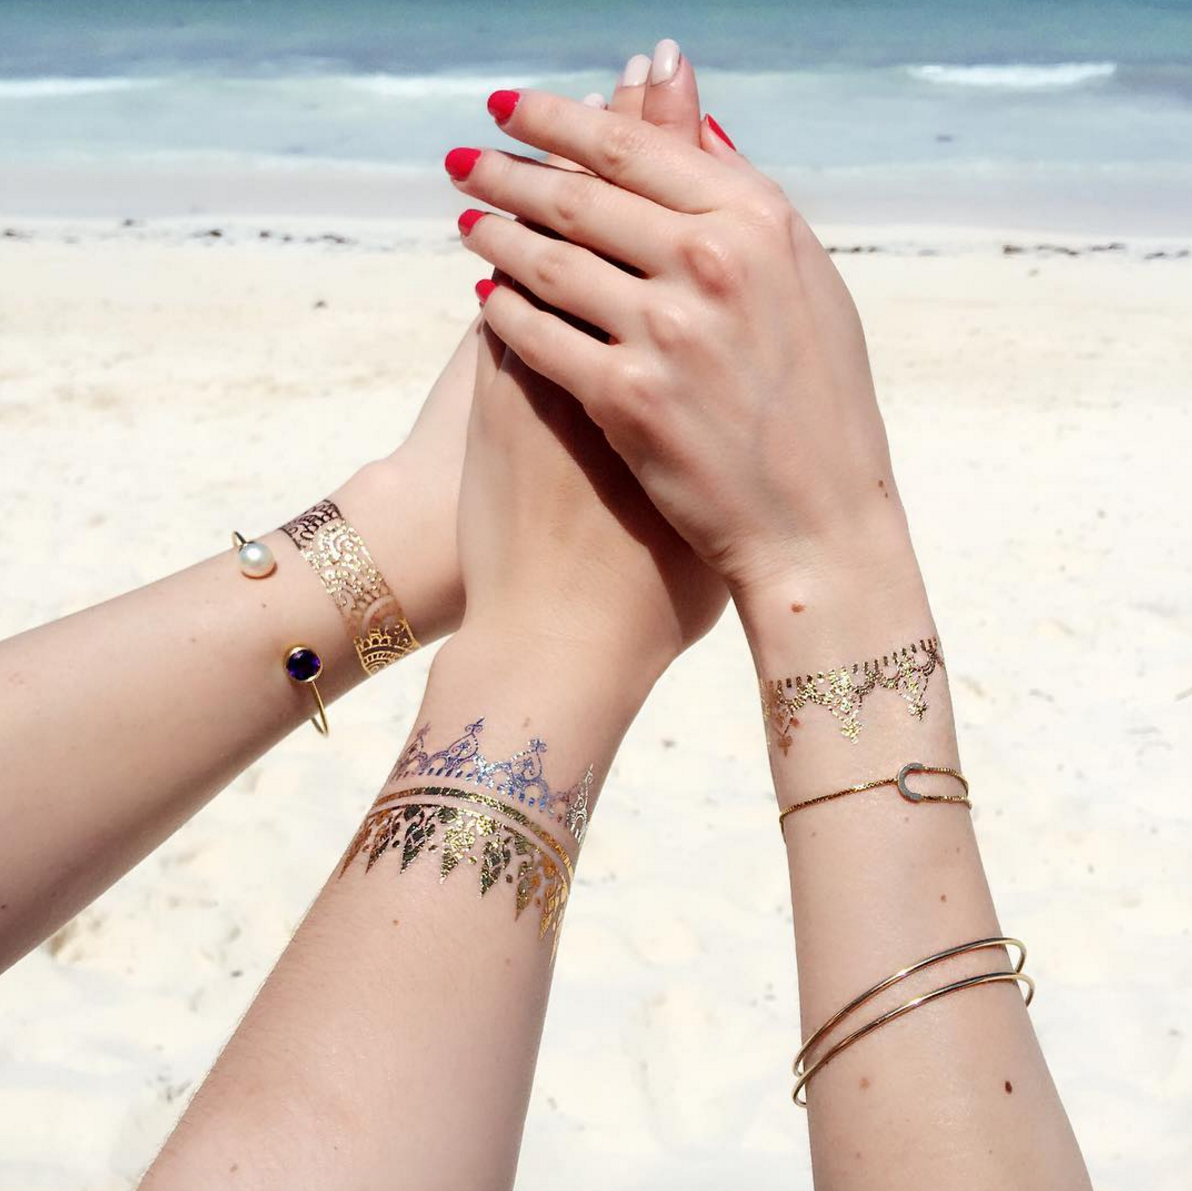 zanzibar-beach-flash-tattoos-inspiration-foxy-cheeks-blog